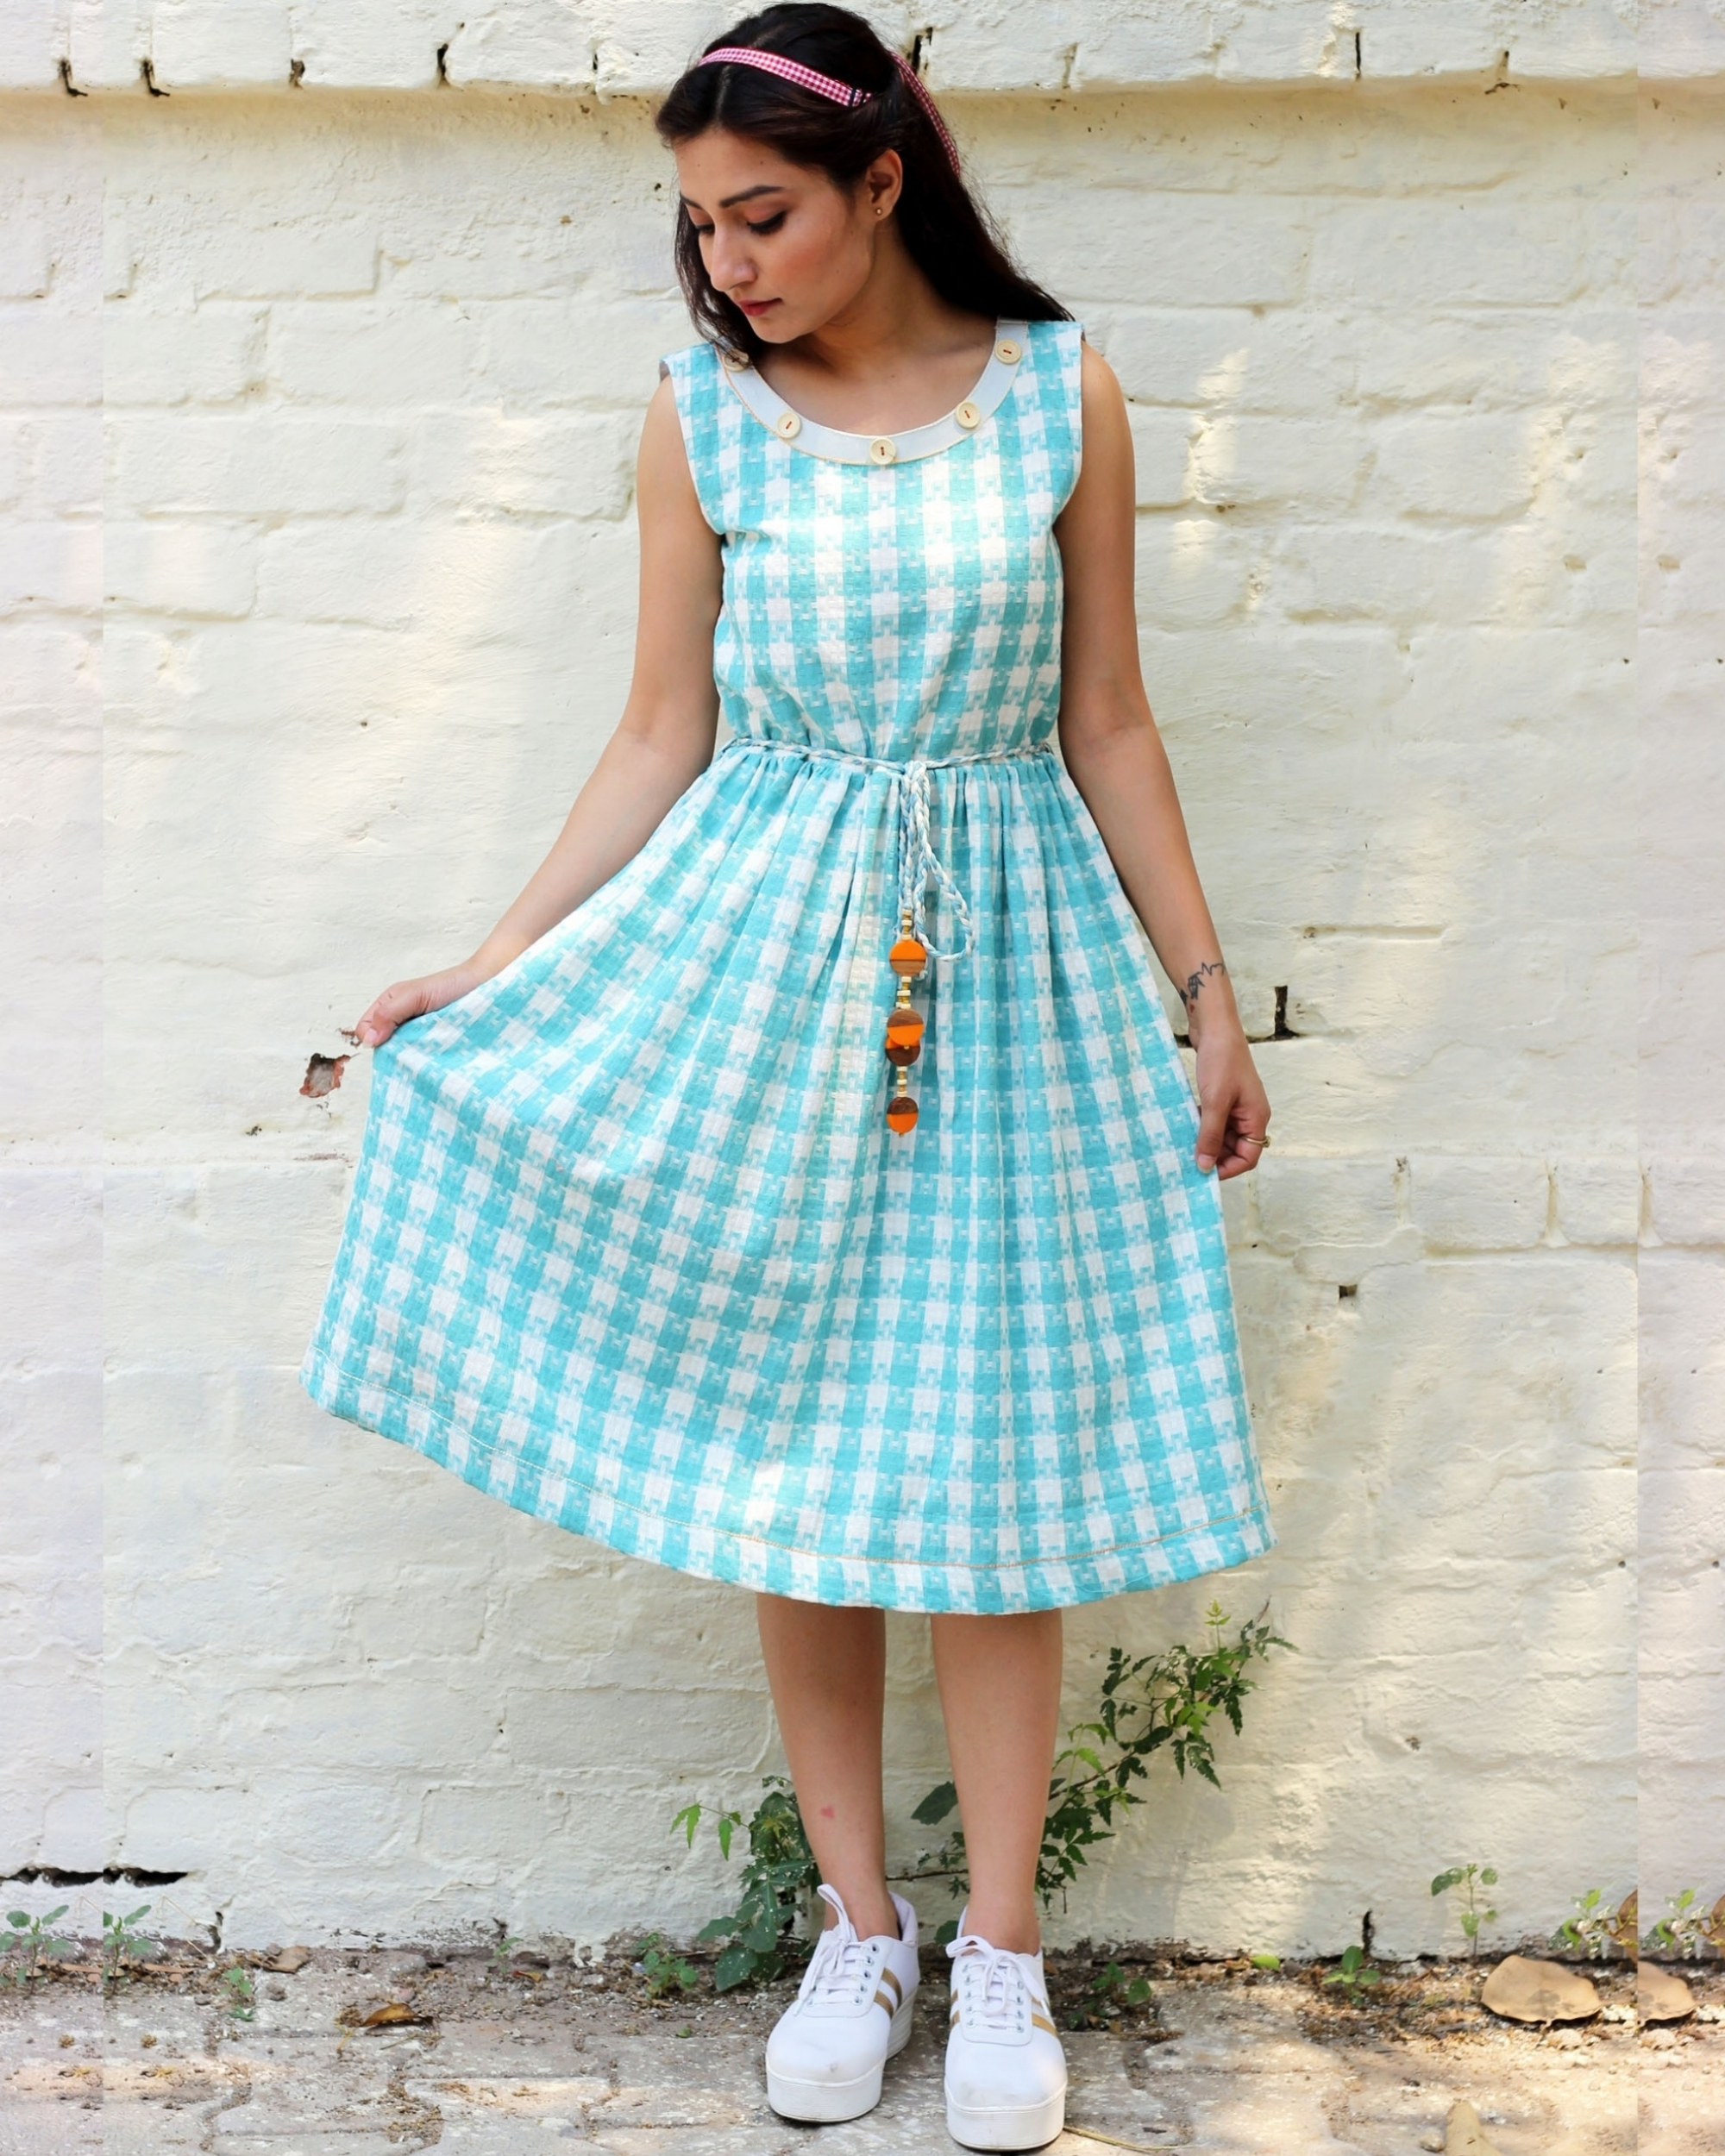 Blue and white checked dress